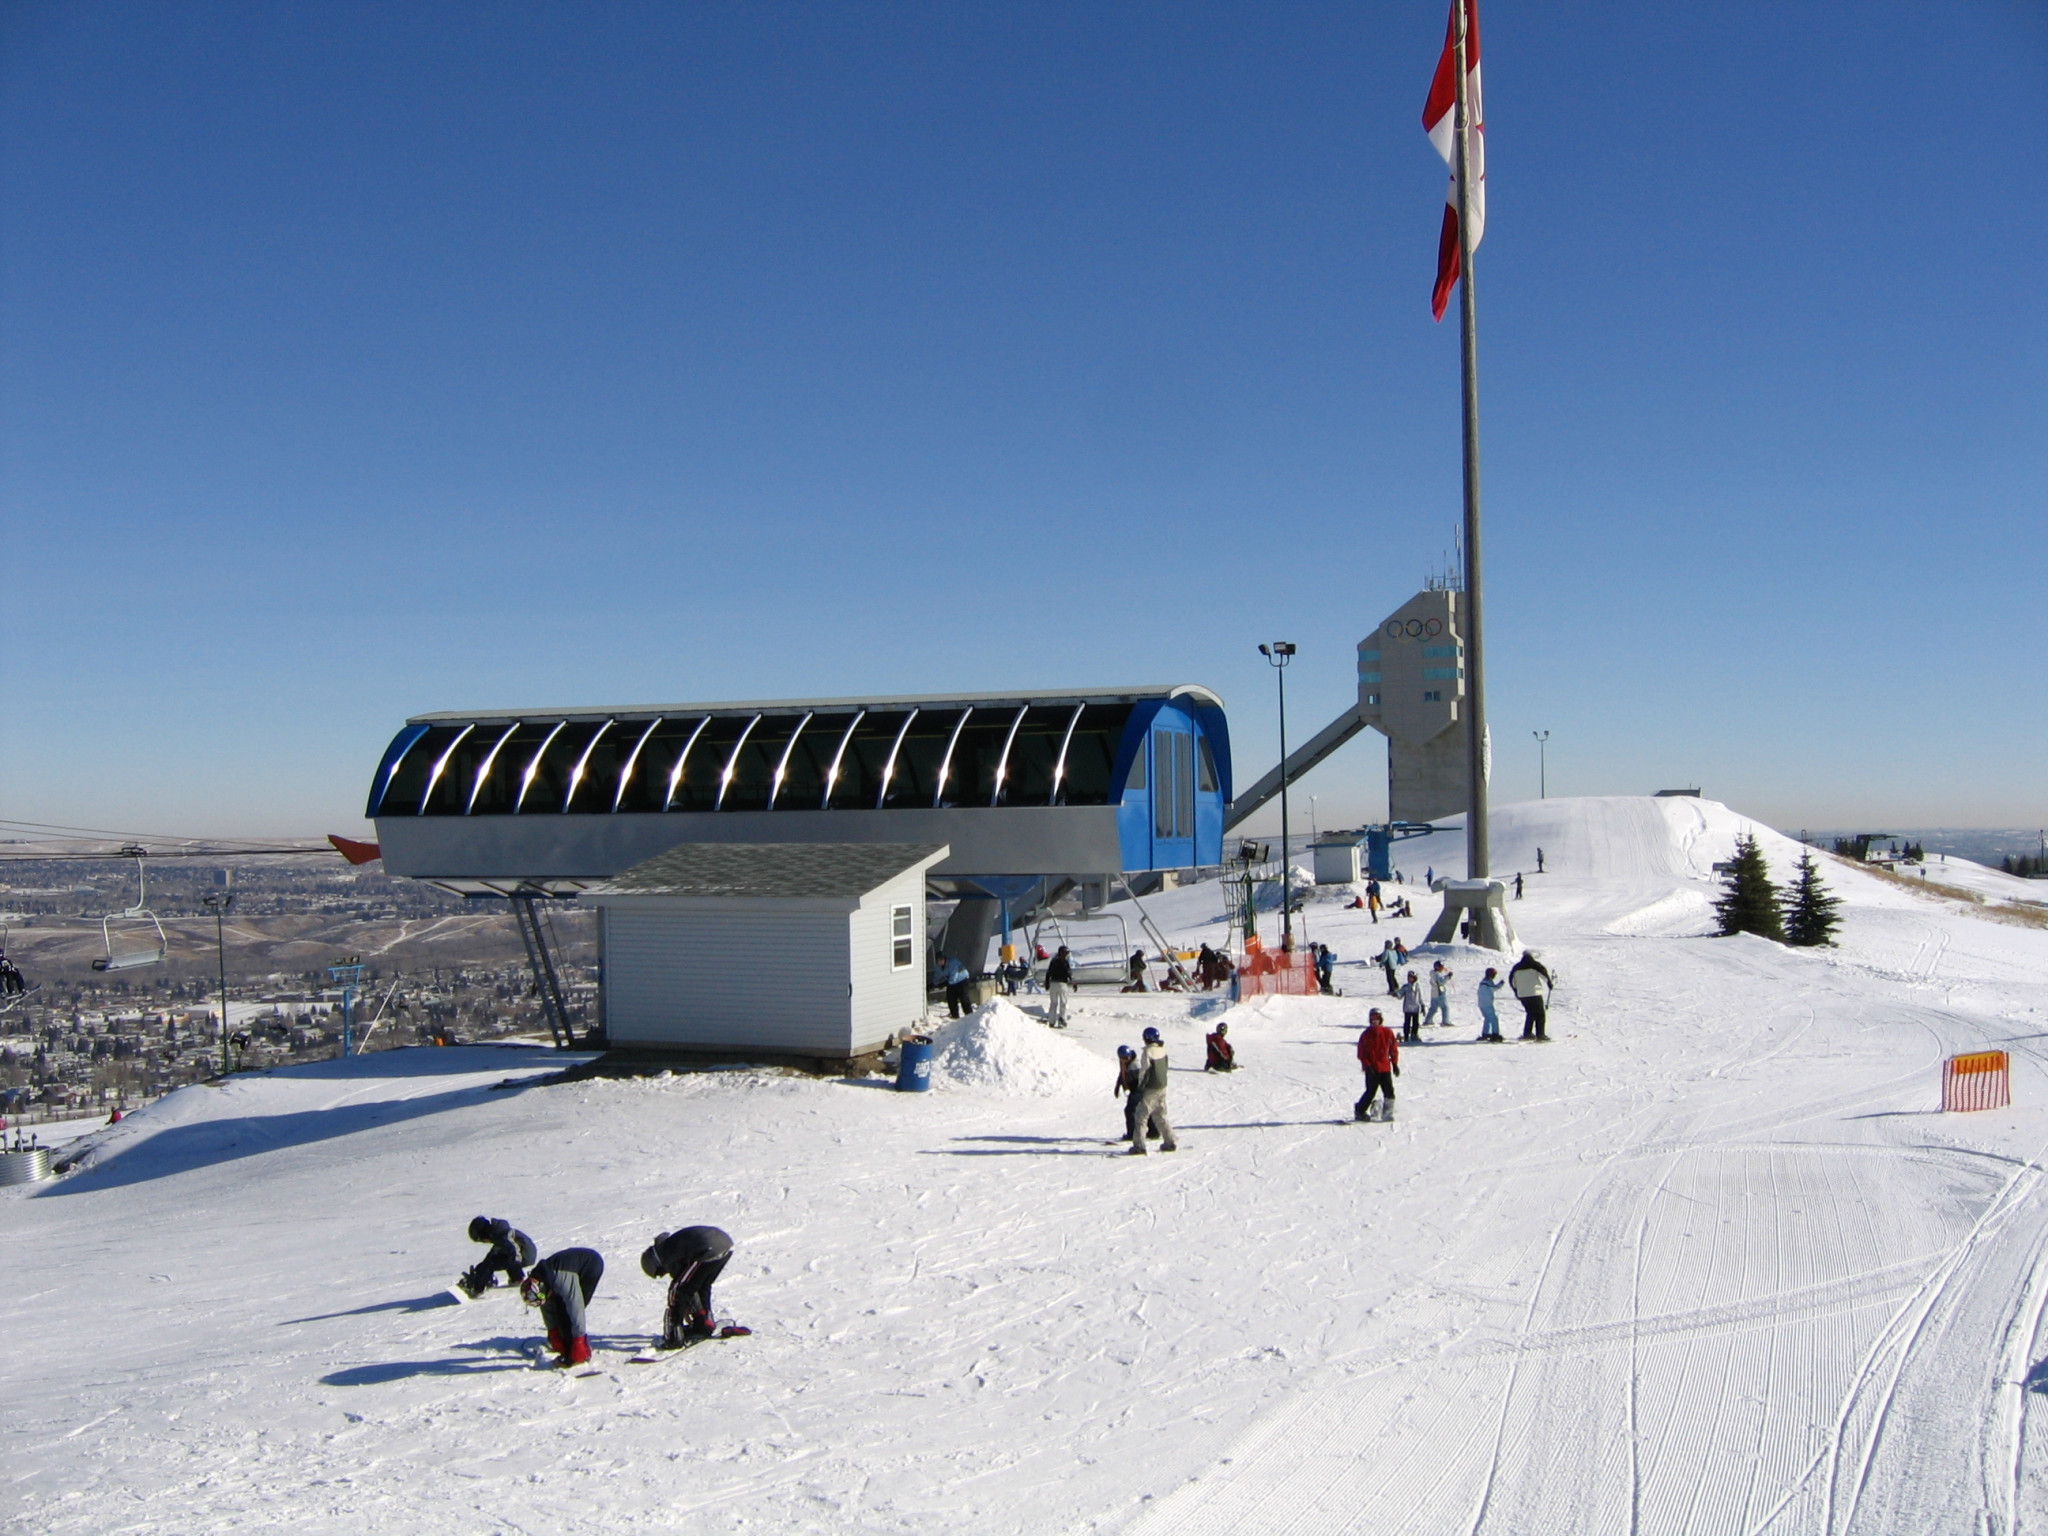 The Canada Olympic Park could be used as a winter sport hub in Calgary ©Wikipedia